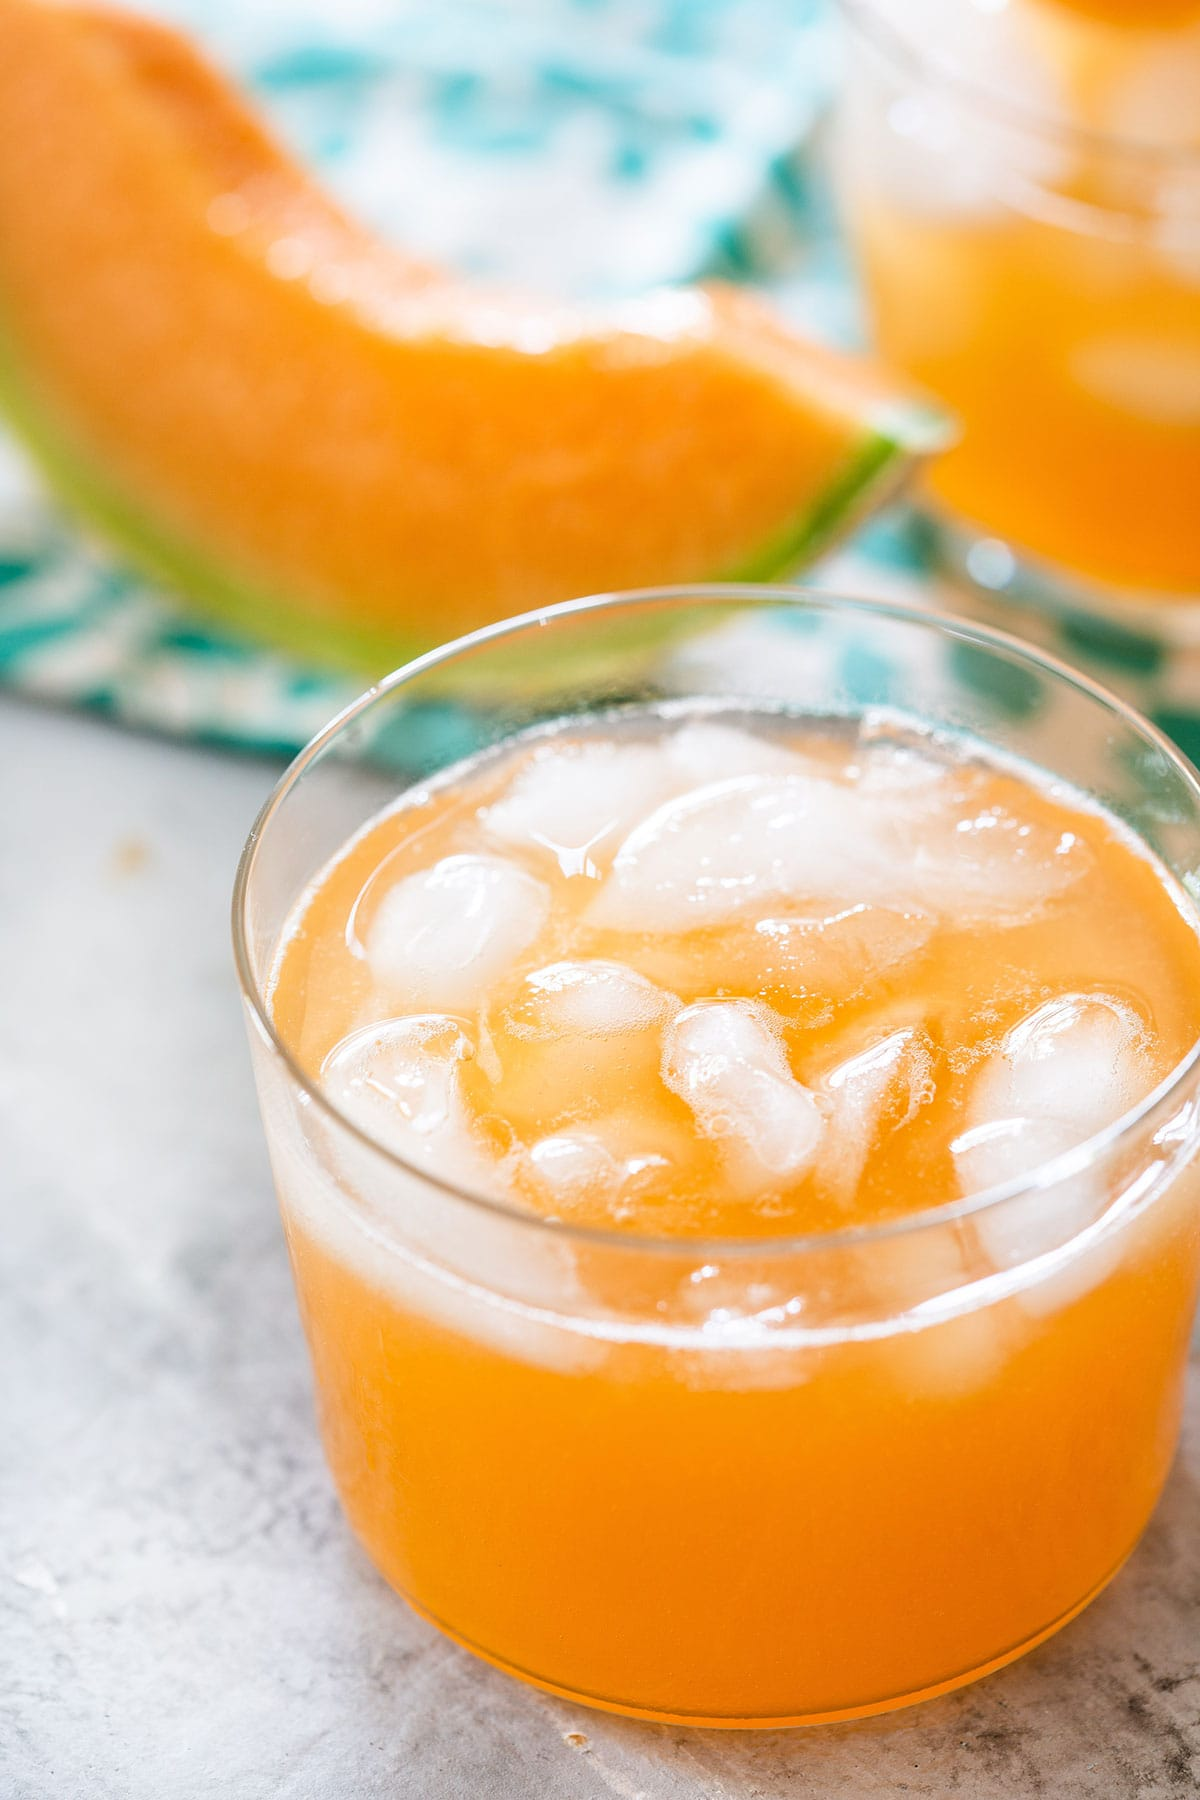 Agua de melon served in a glass with ice.